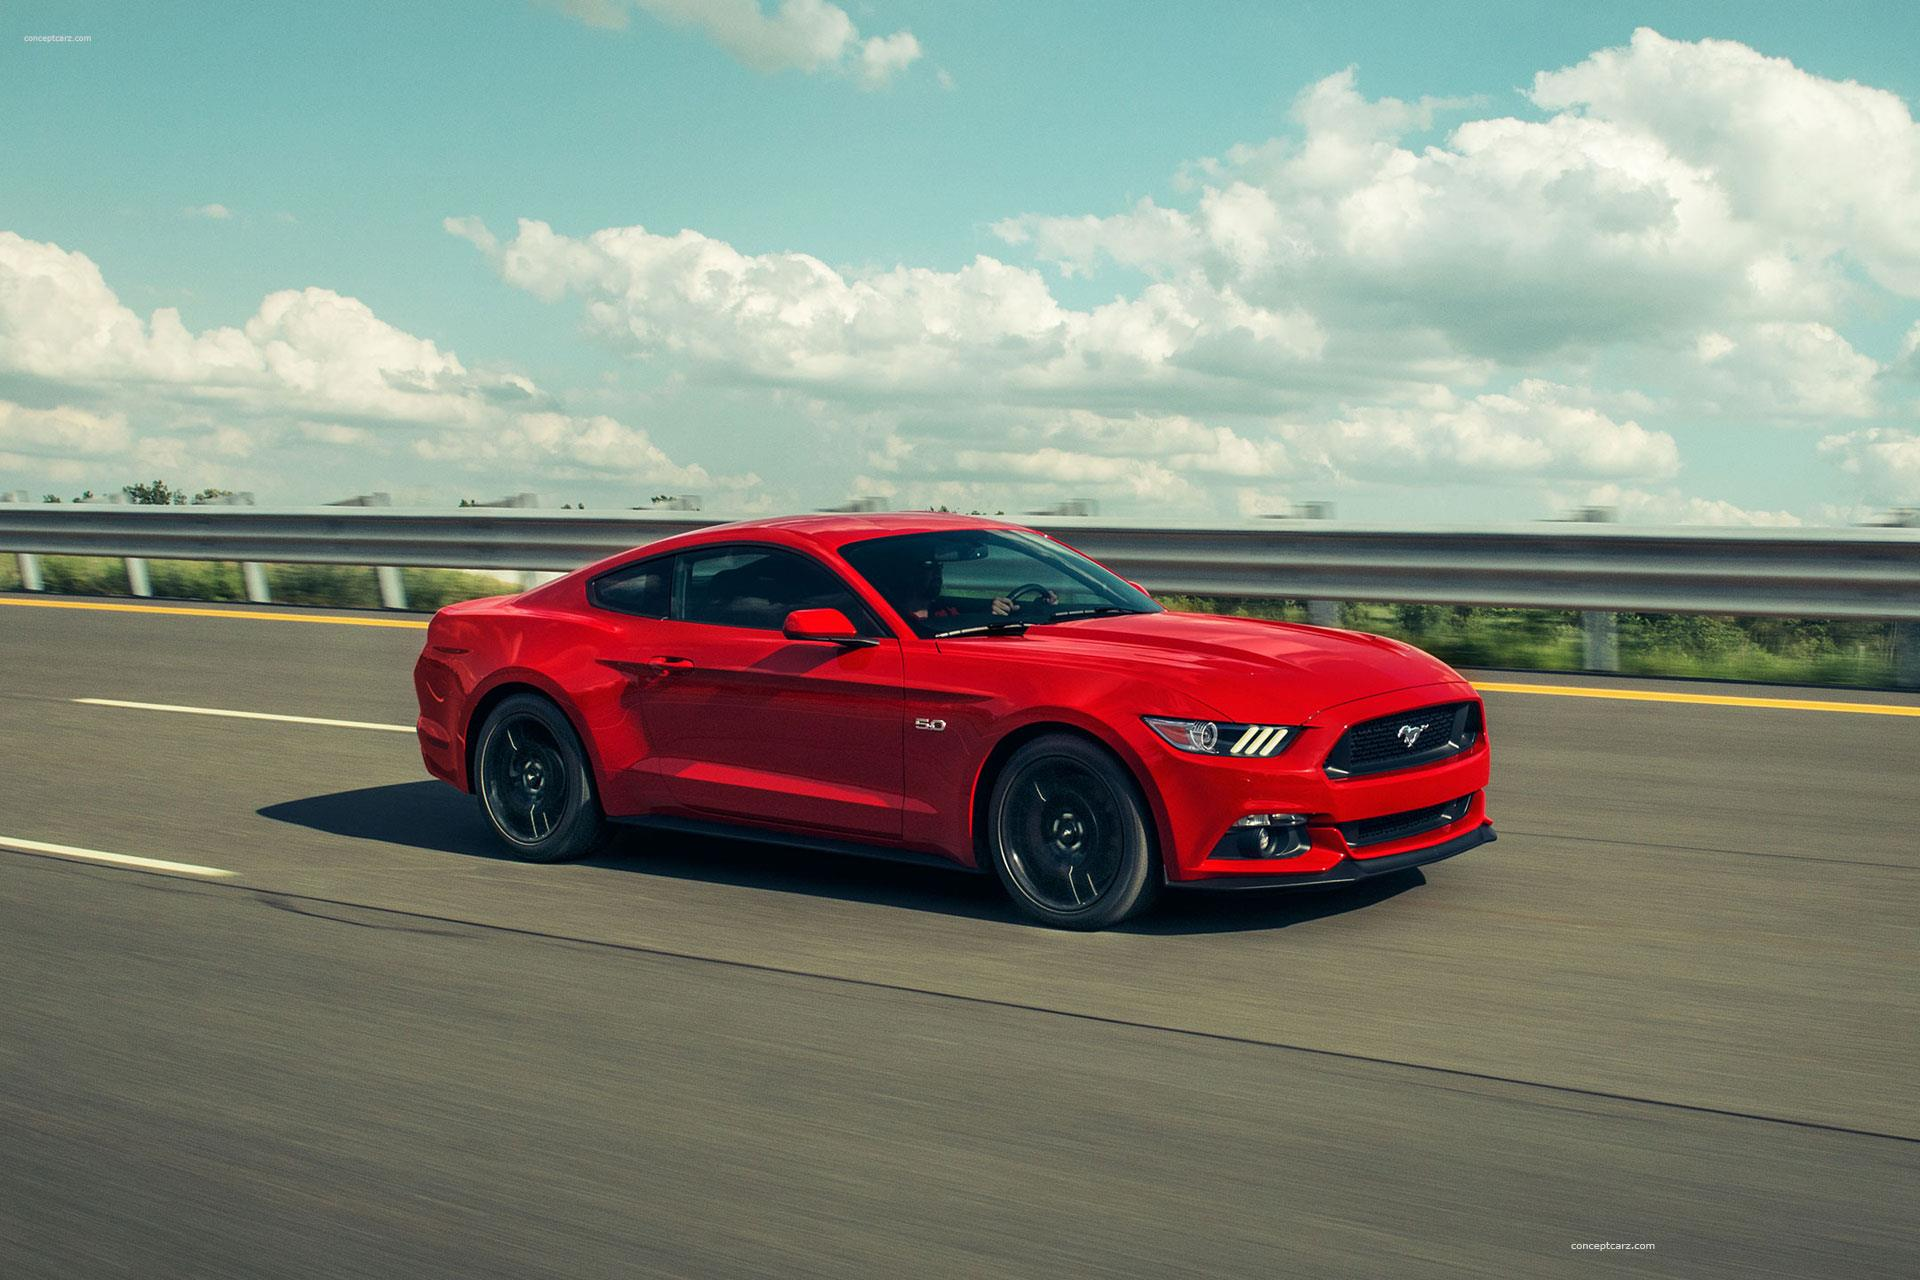 2017 Ford Mustang Image Https Images 1954 Shelby